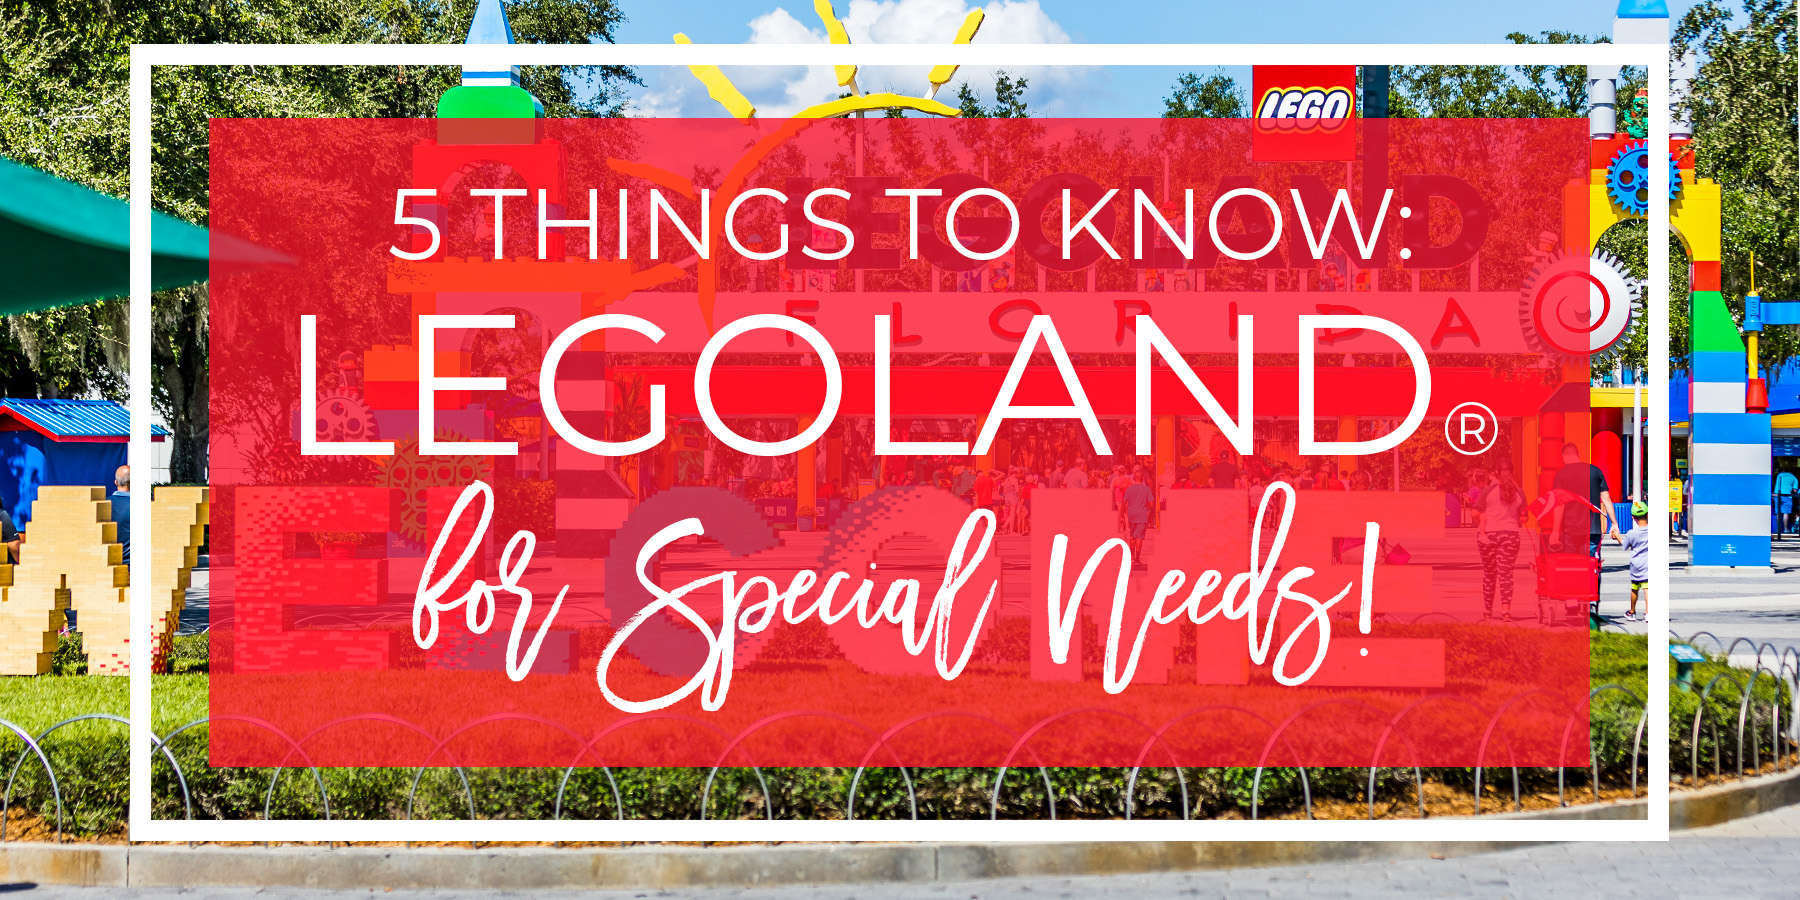 5 Things to Know Before Going to Legoland with your Special Needs kid! #legoland #legolandfl #specialneedslegoland #legospecialneeds #autismlegoland